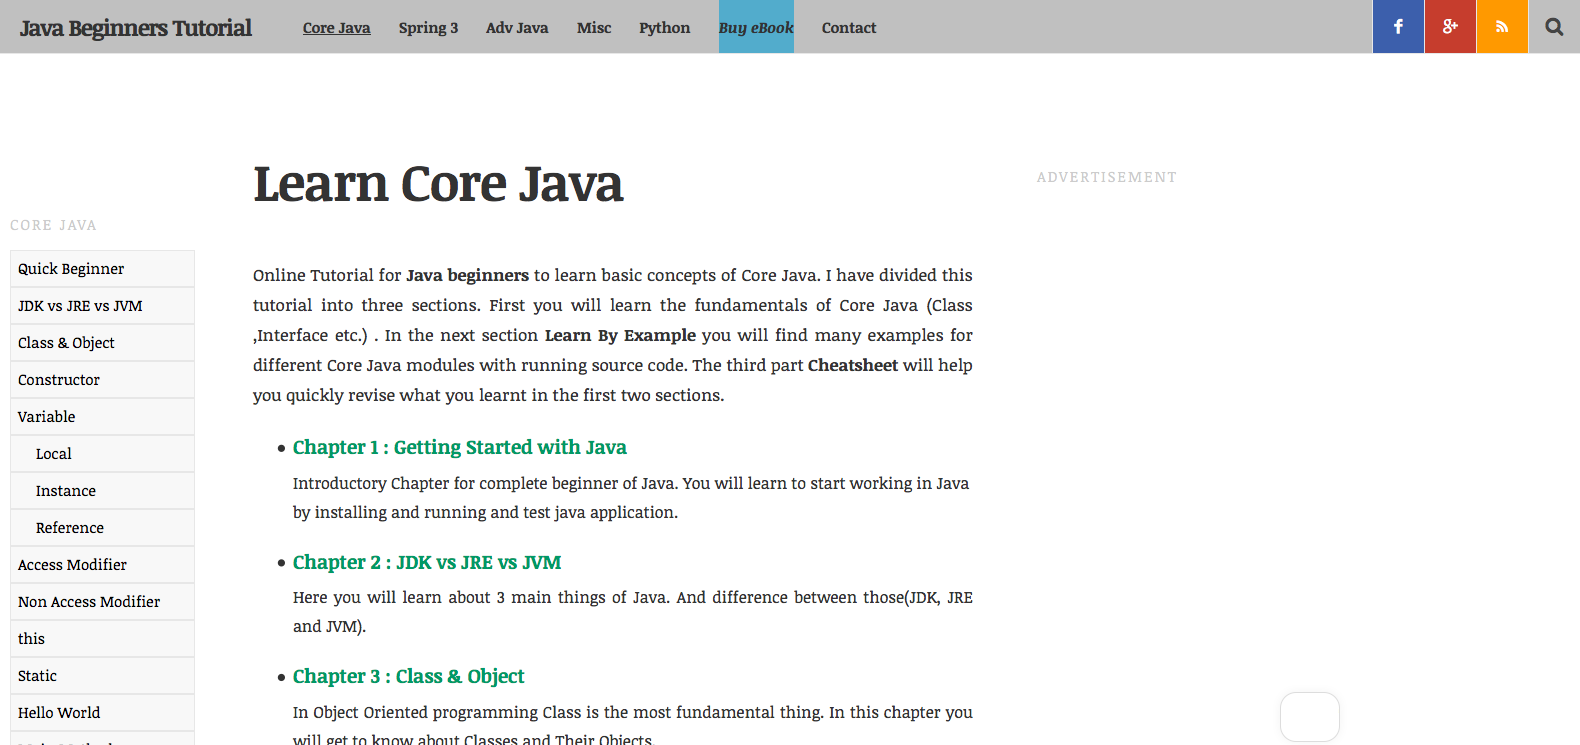 learn java online a guide codementor if you prefer to learn at your own pace and explore topics you feel are more suitable for your needs java beginners tutorials will take you from